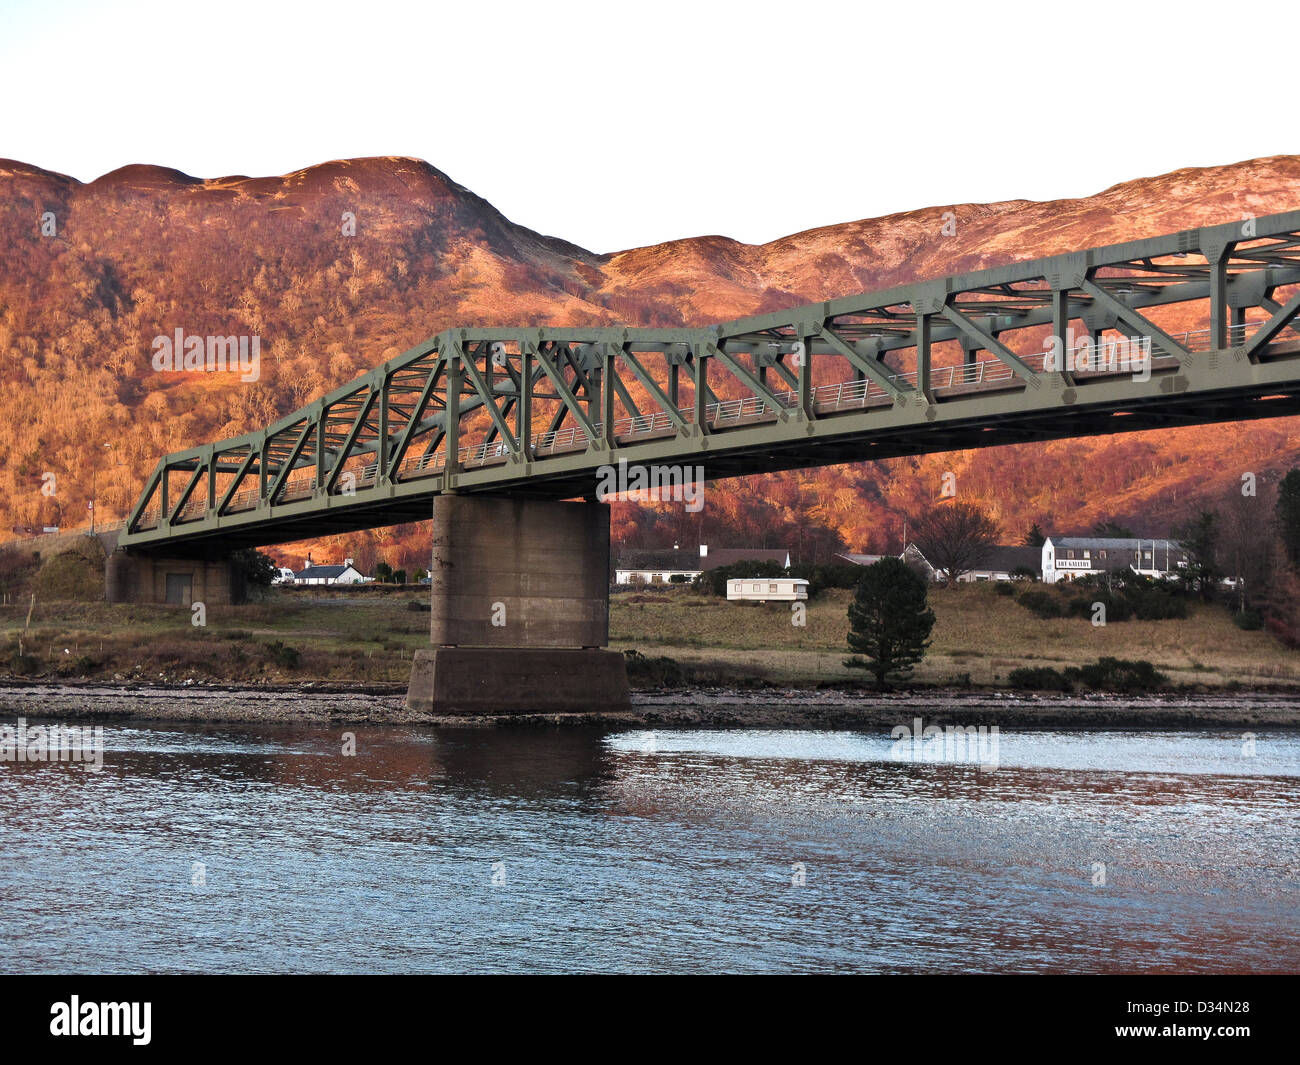 The Ballachulish bridge in the west highlands of Scotland, near Fort William and Glencoe - Stock Image